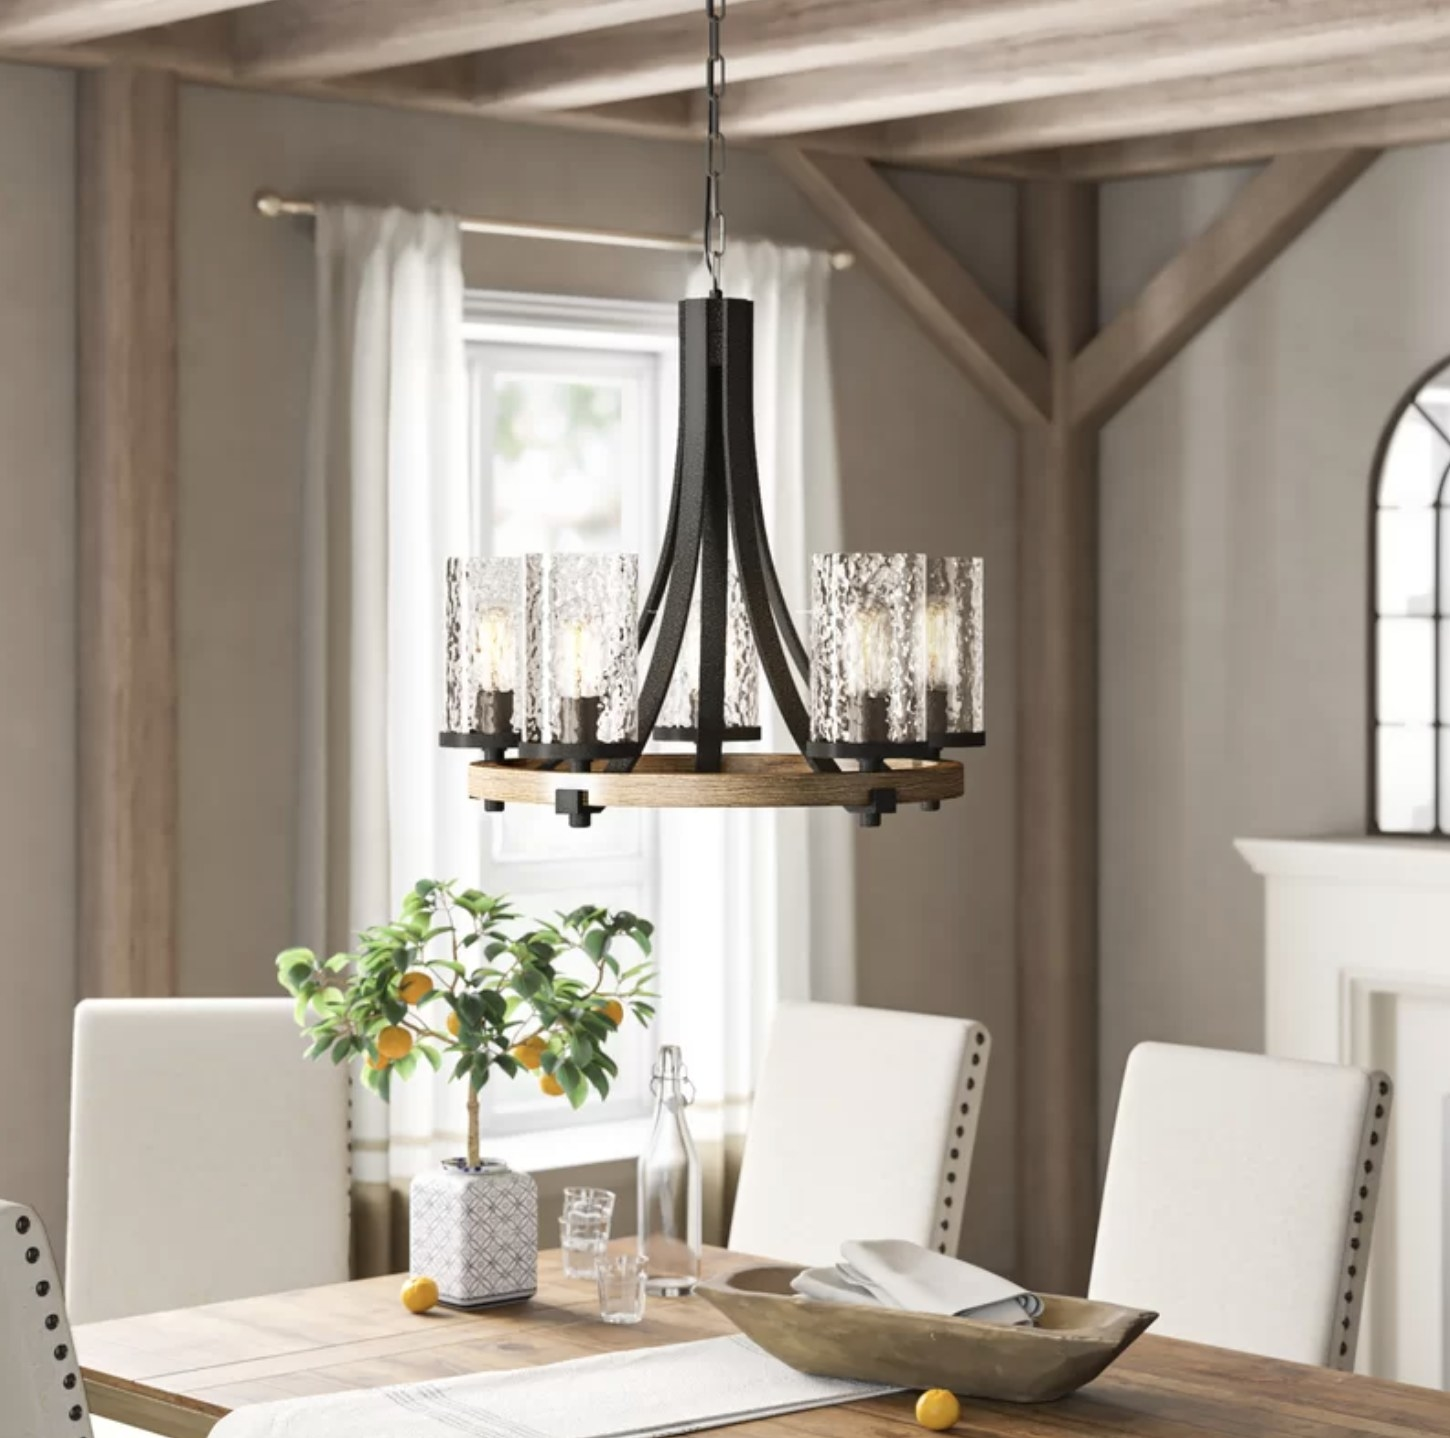 The chandelier above a dining room table